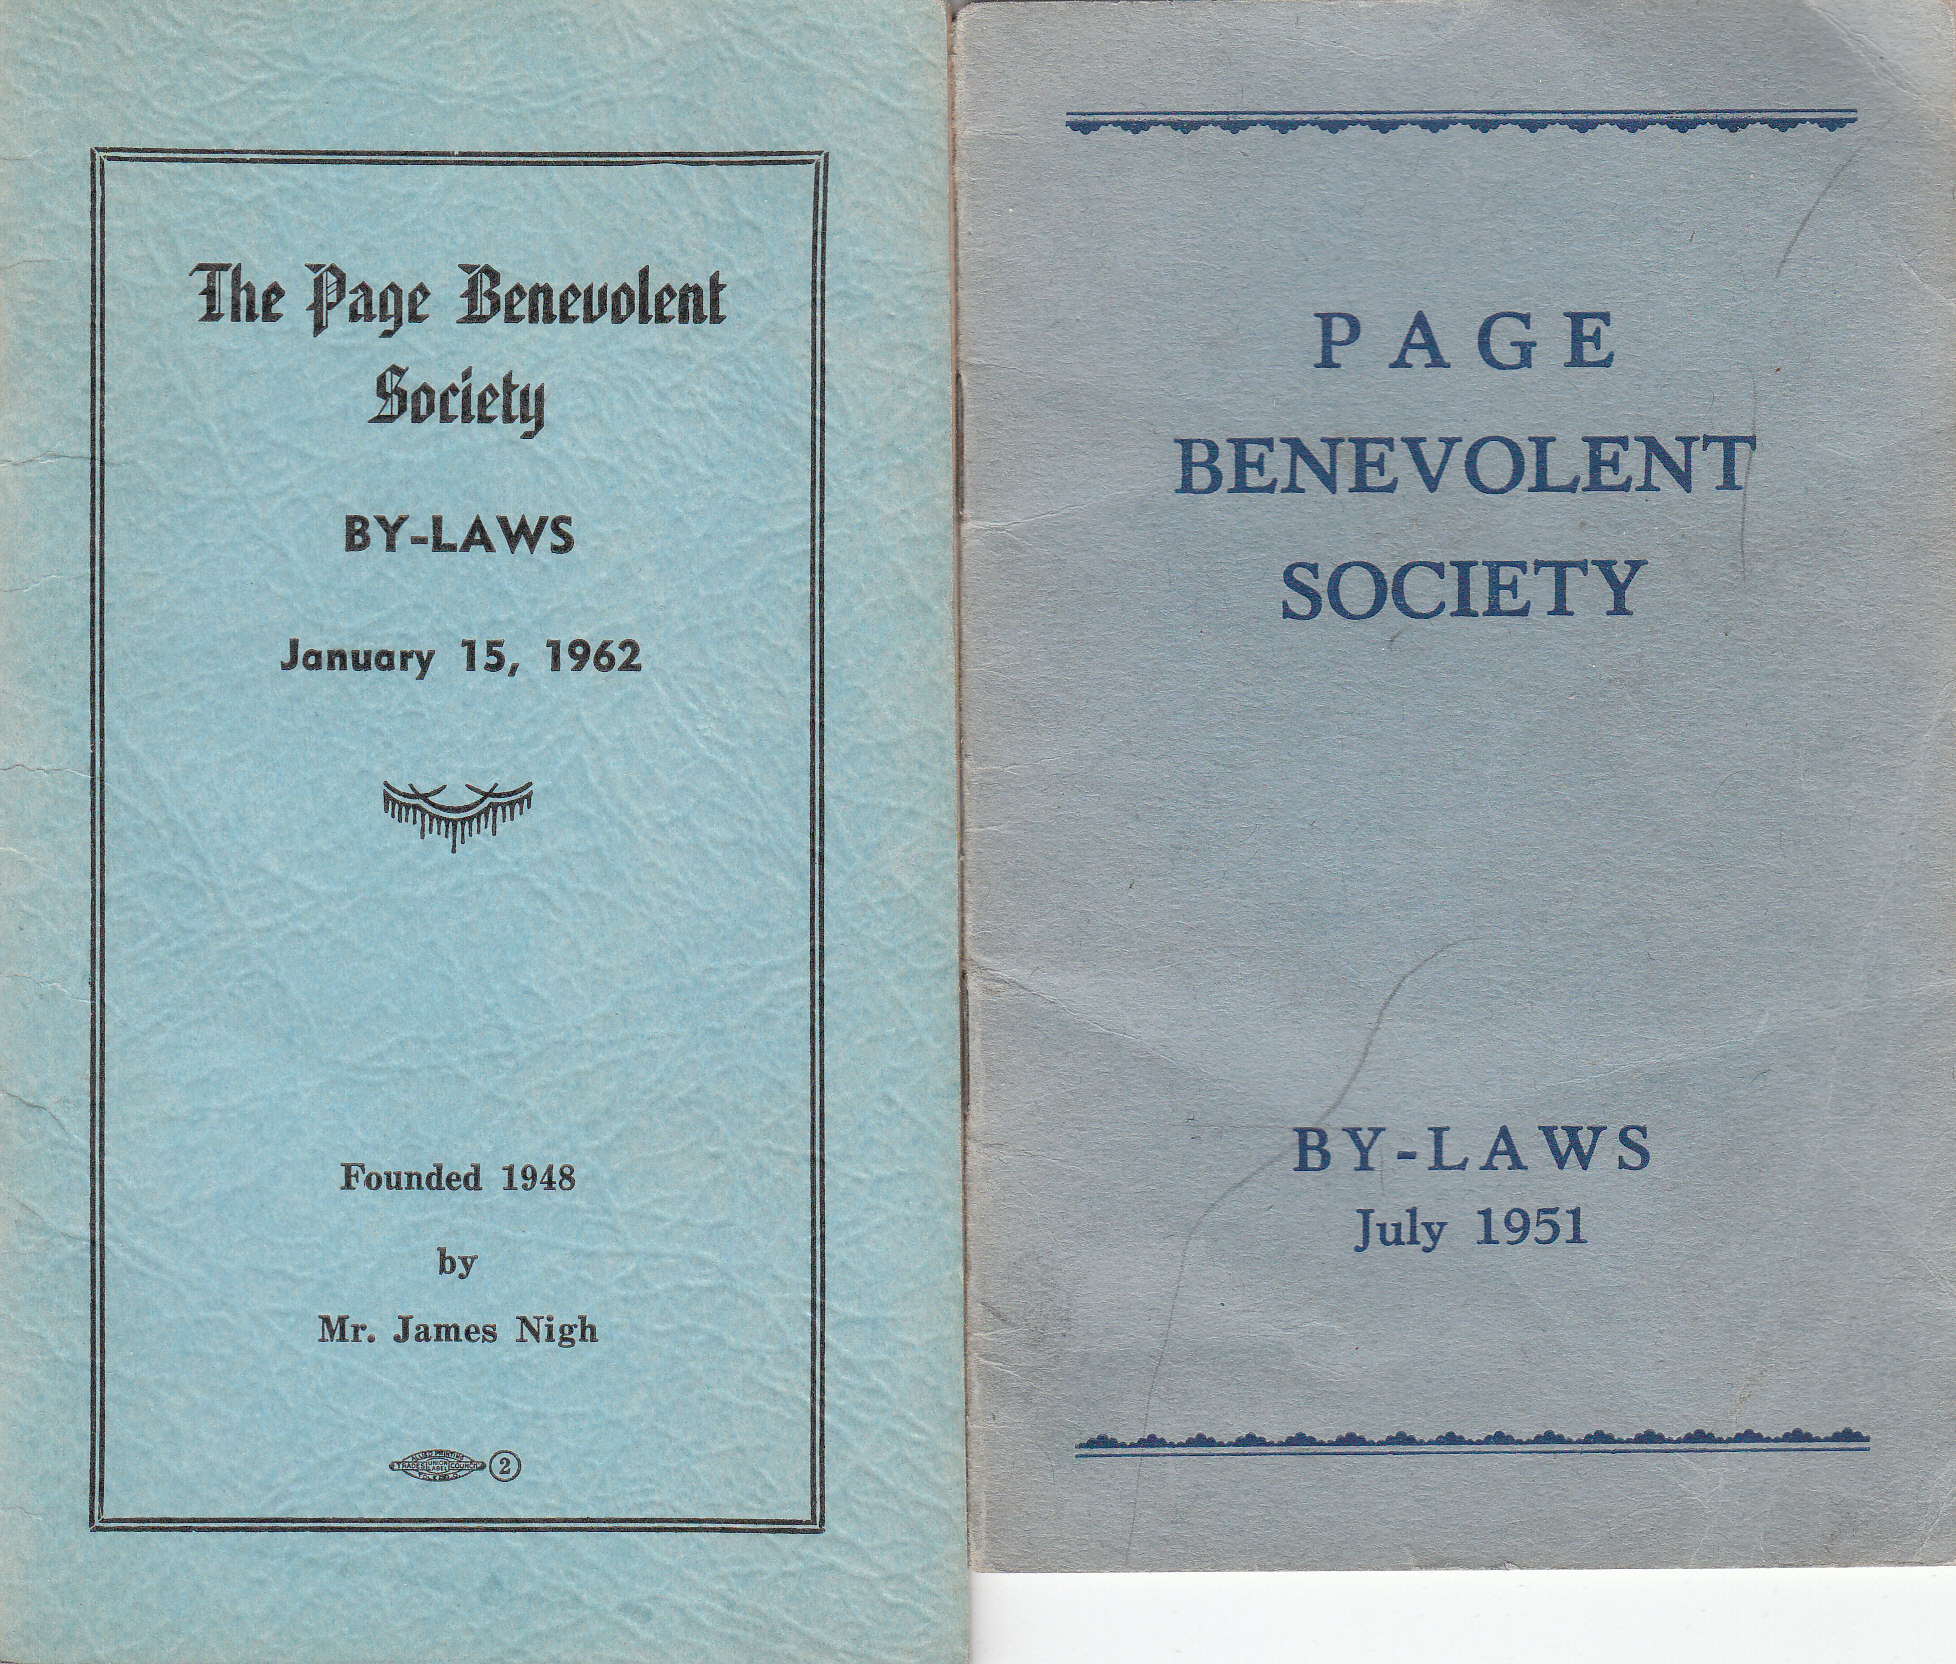 Page Benevolent Society By-Laws 1951 and 1962